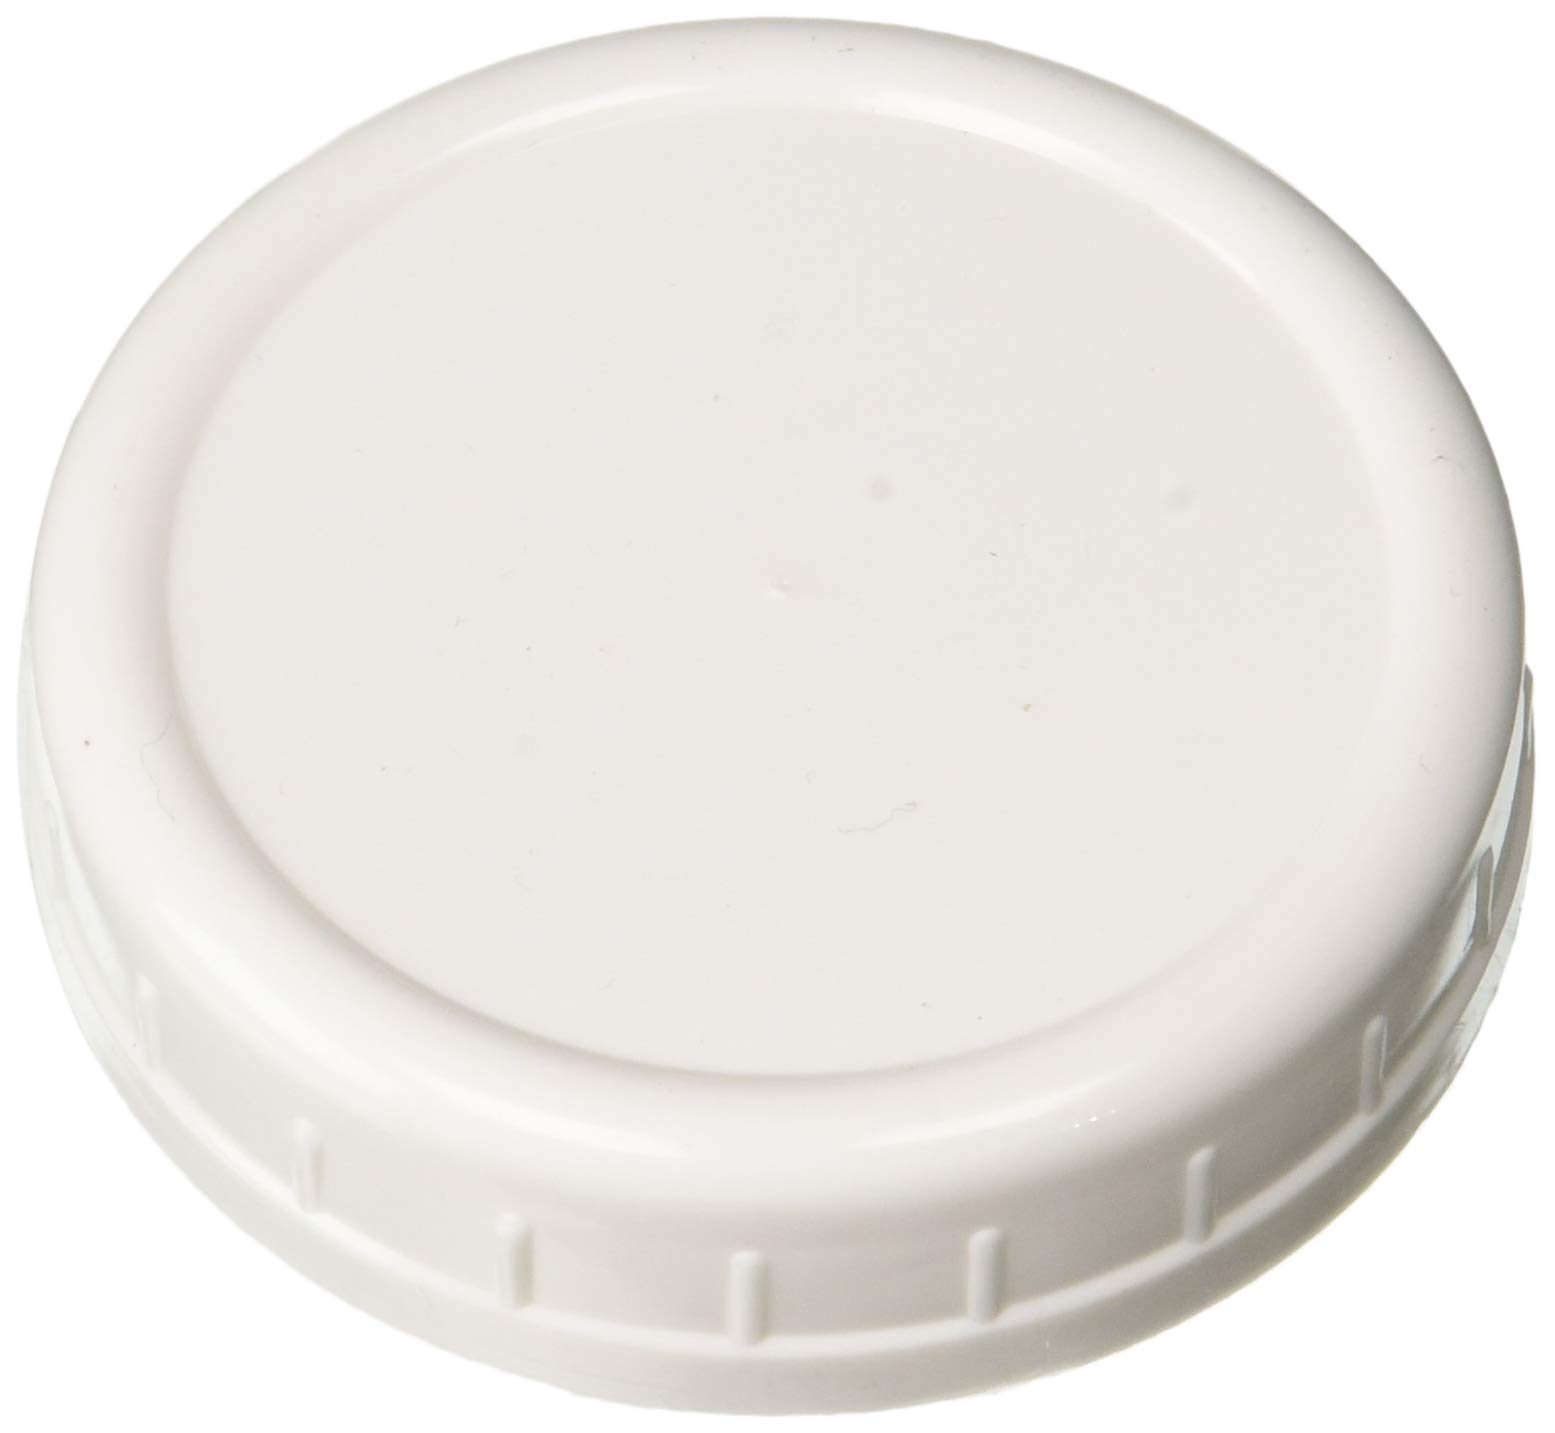 Ball Storage Caps Regular Mouth Jar & Wide Mouth Jar Combo, 1 Package of Each